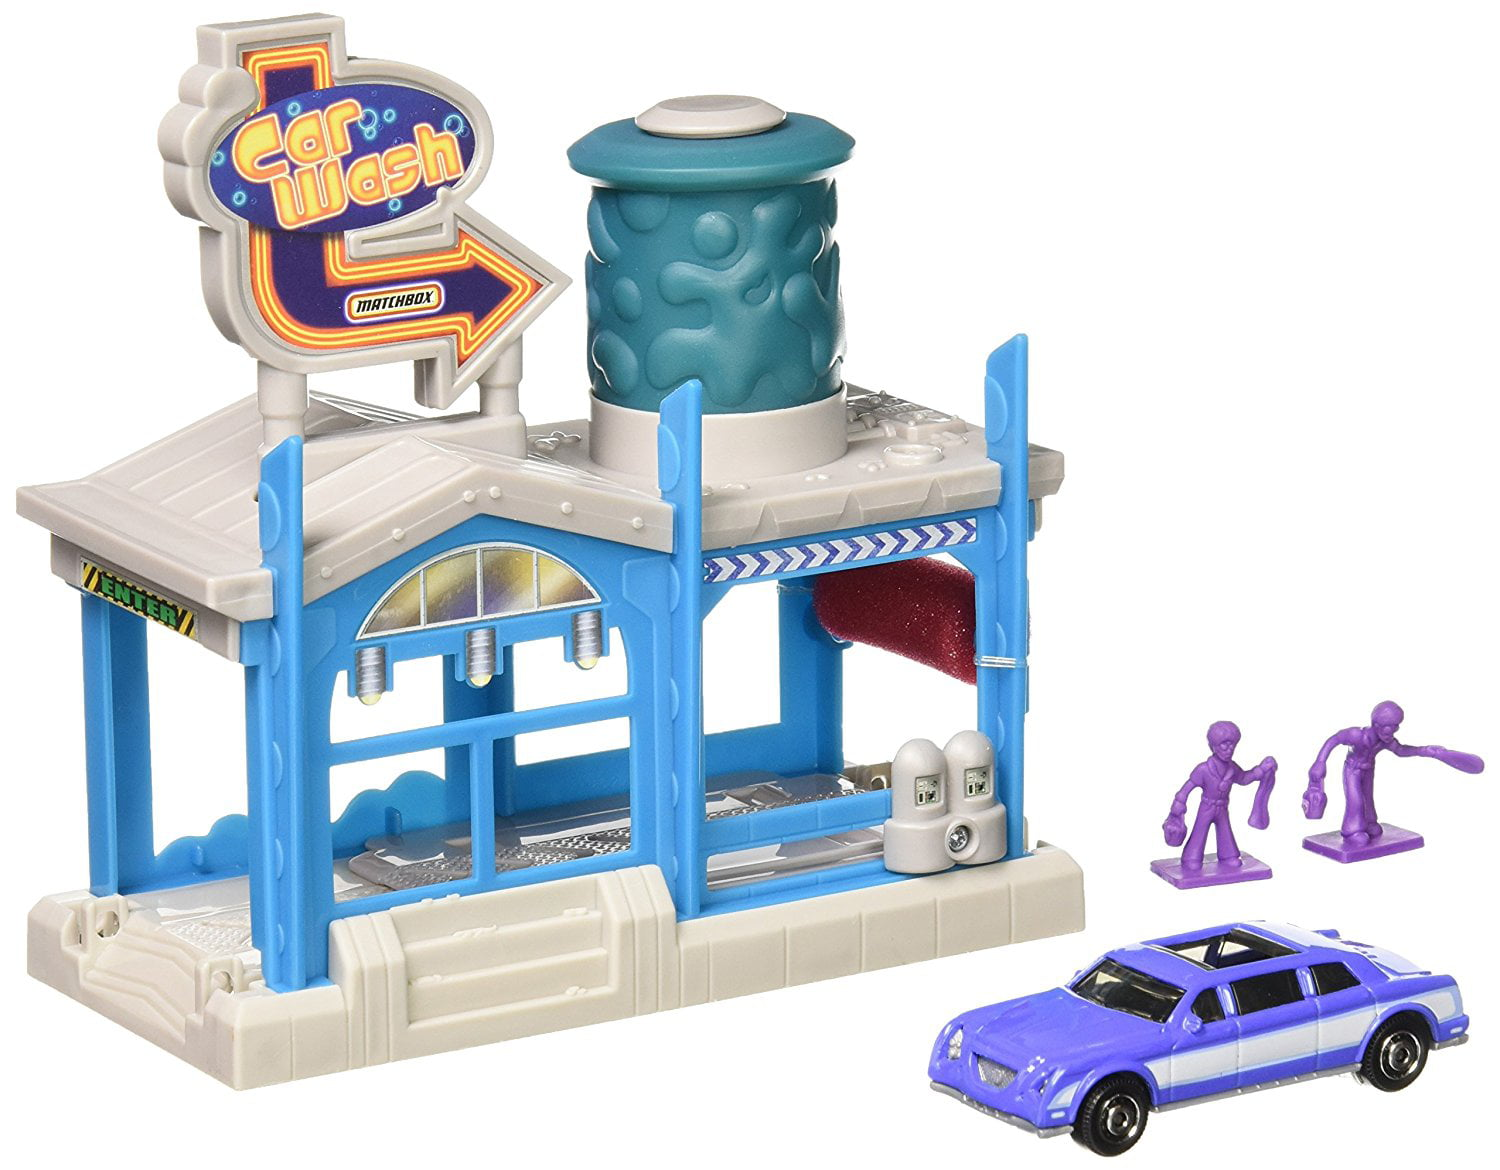 Matchbox Car Wash Playset with Die-Cast Car, Great addition to ...